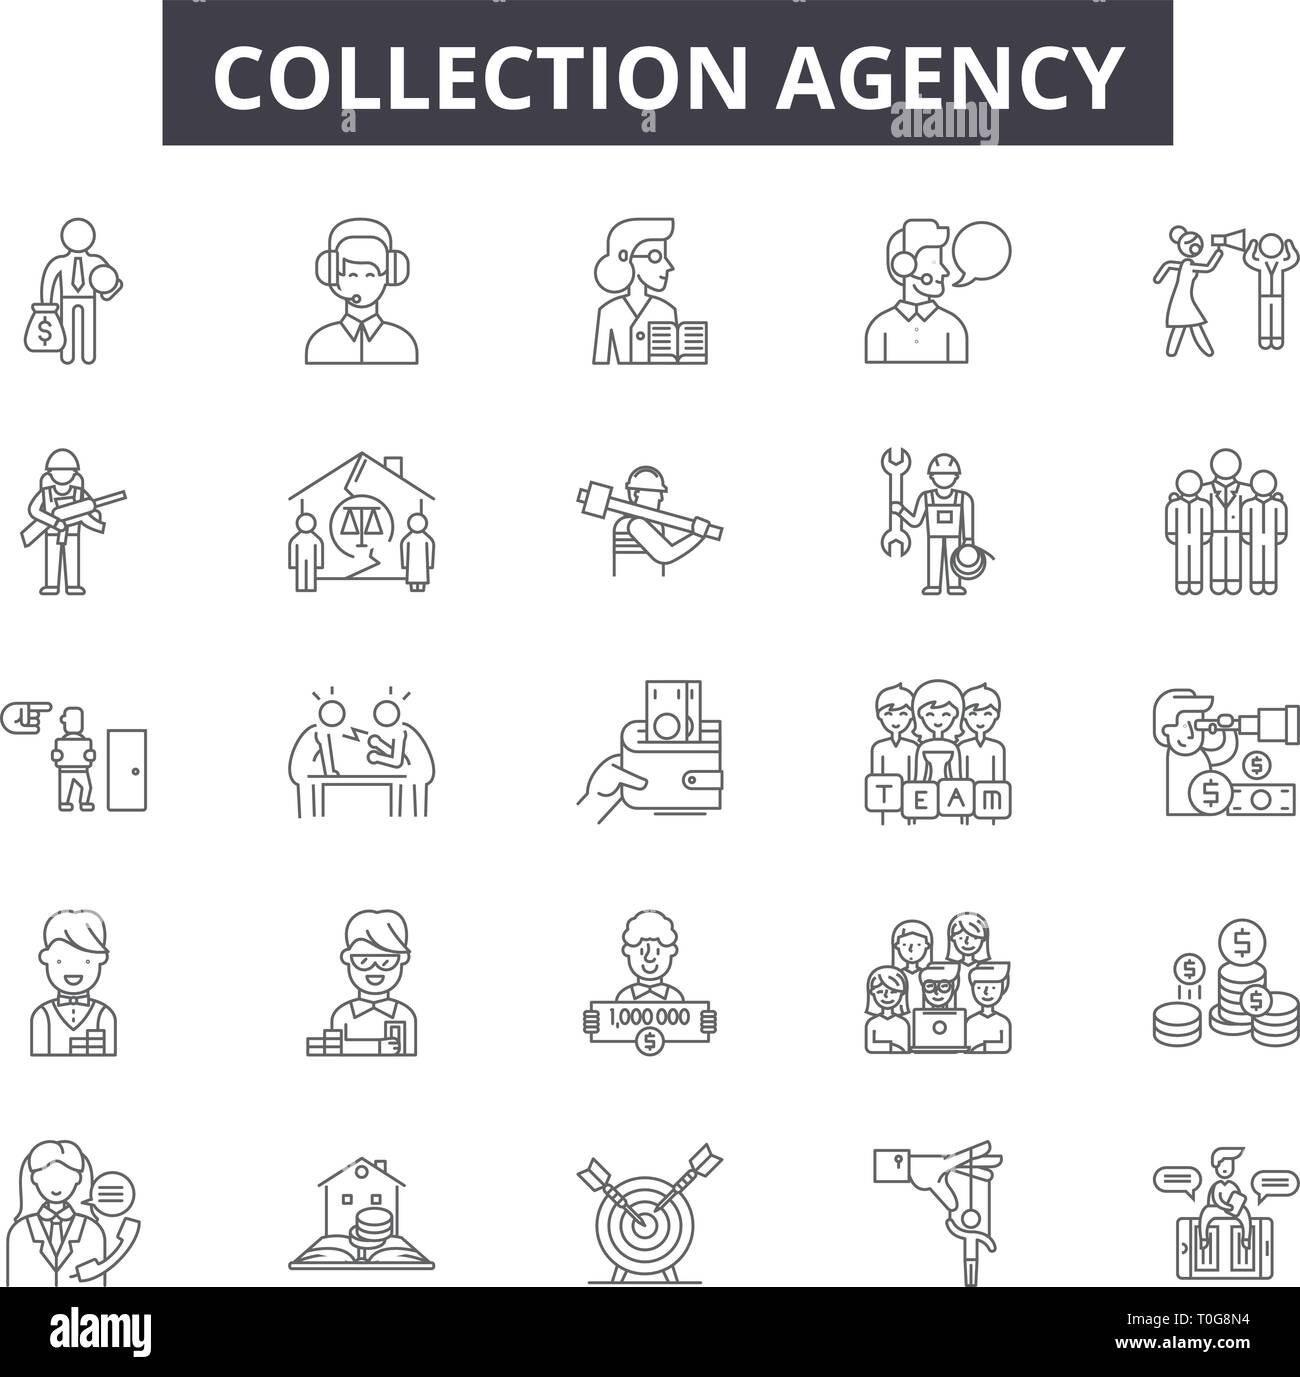 Collection agency line icons for web and mobile design. Editable stroke signs. Collection agency  outline concept illustrations - Stock Image